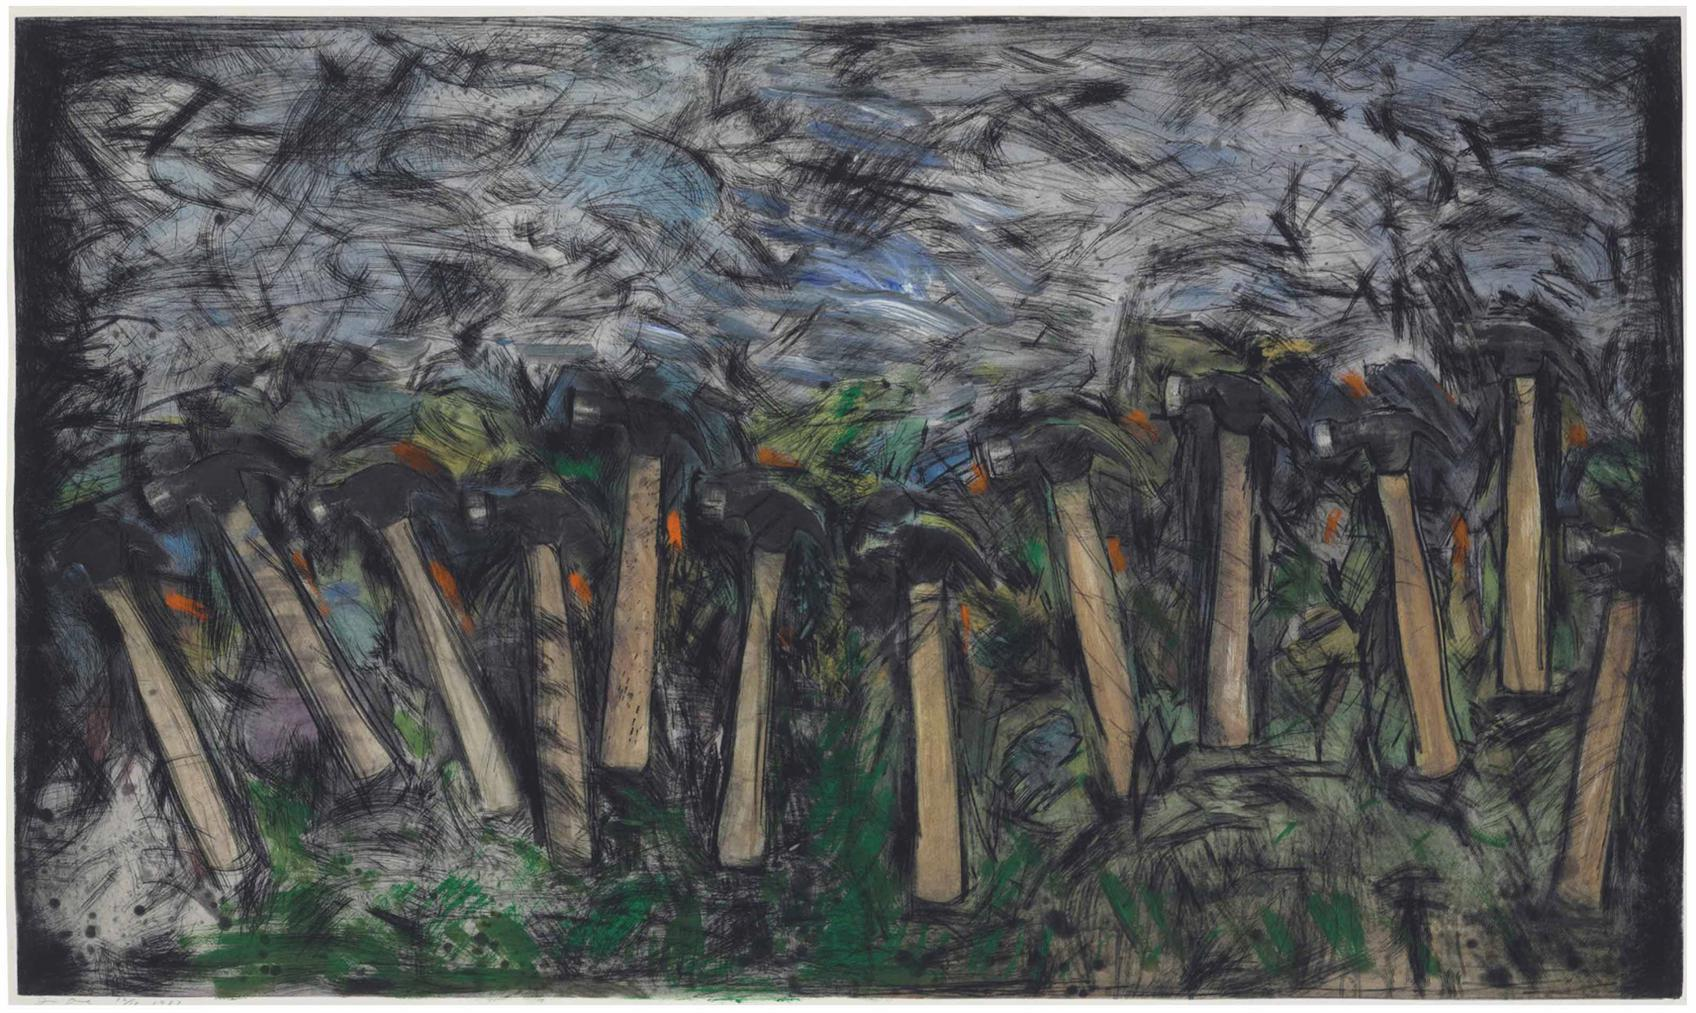 Jim Dine-Running Hammers In A Landscape-1987